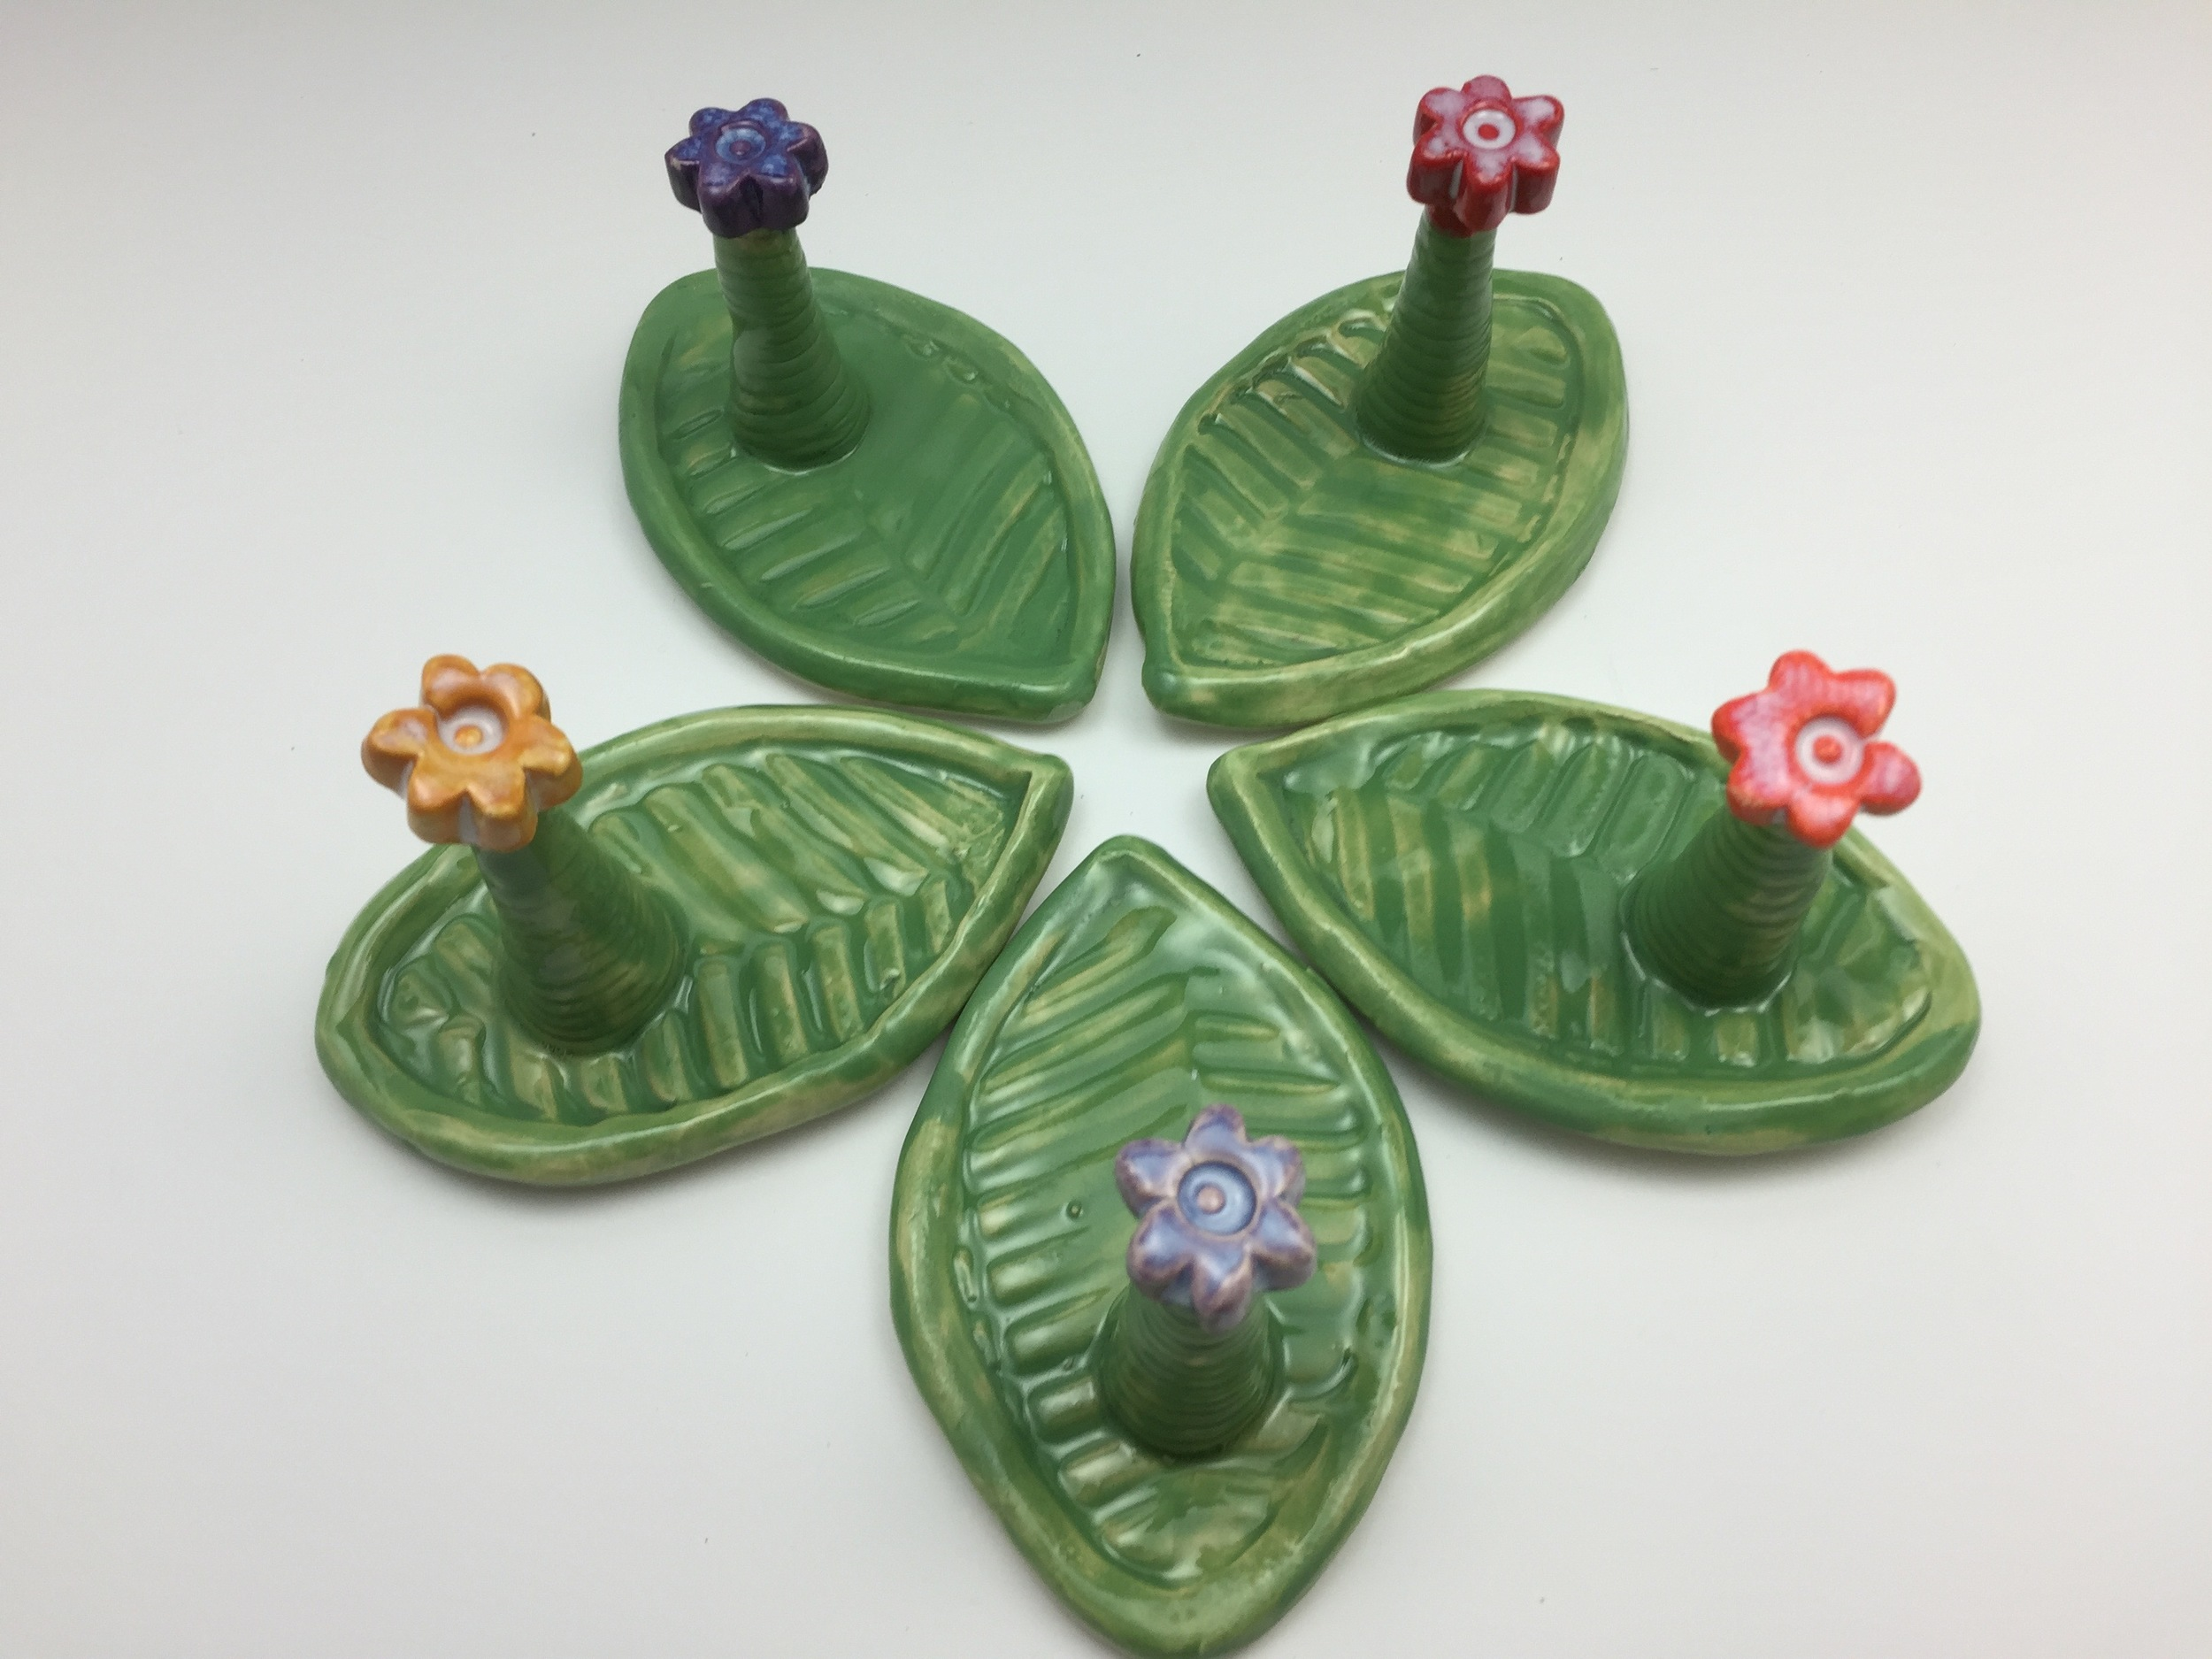 I'm excited about the design of these little ring-holder dishes. I am happy with the overall look, but still need to make some adjustments for total functionality. The creative pottery process takes time and often requires adjustments. I don't find it frustrating -- in fact it's invigorating and keeps me going back to the studio time and again!